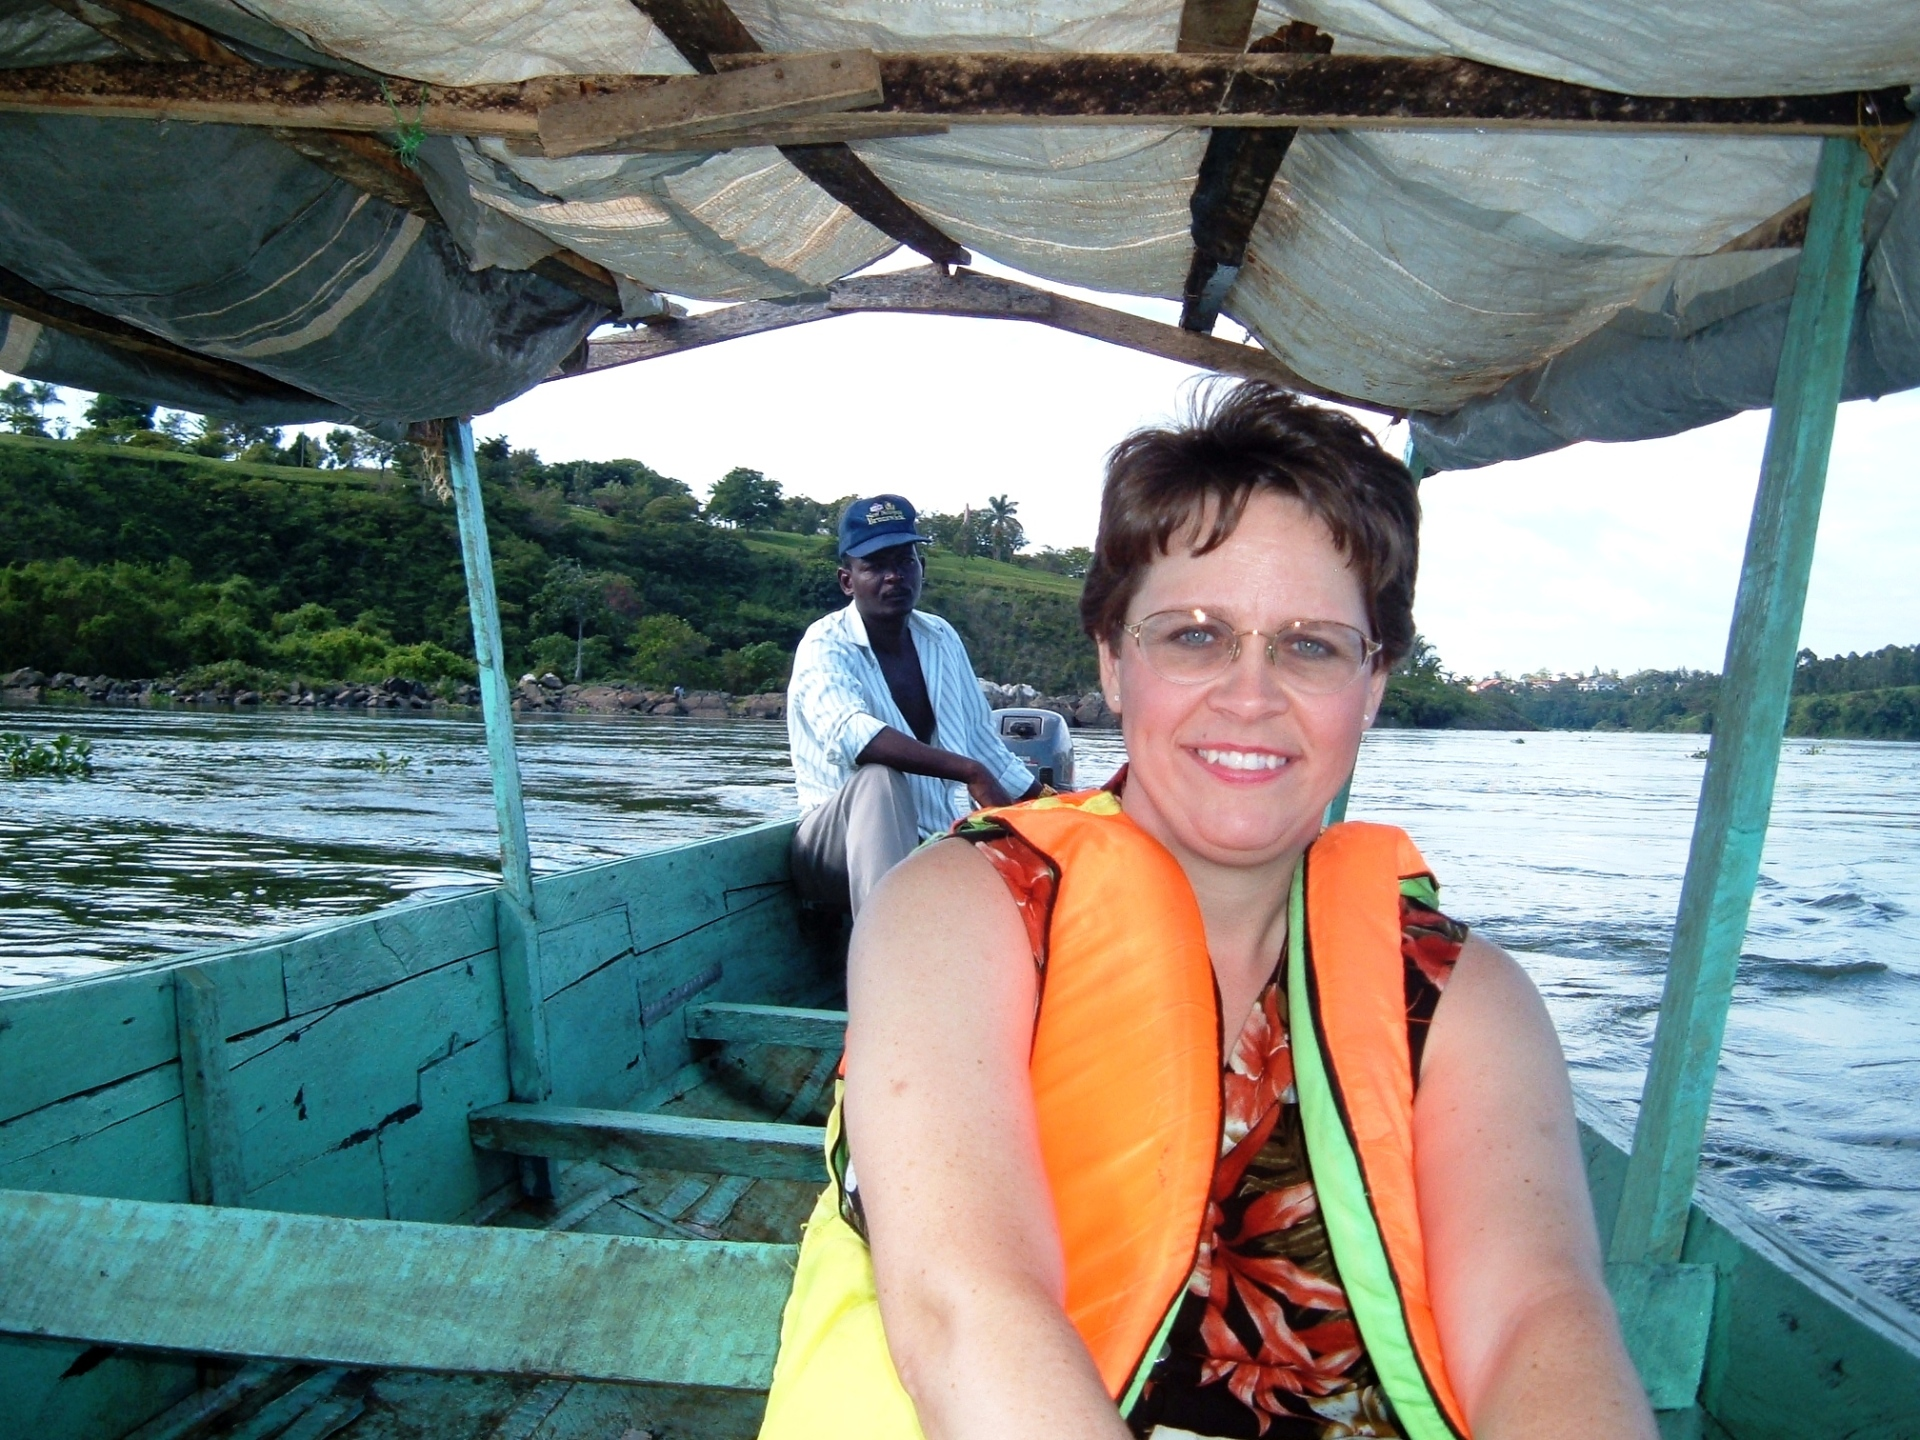 At the source of the Nile River, Uganda